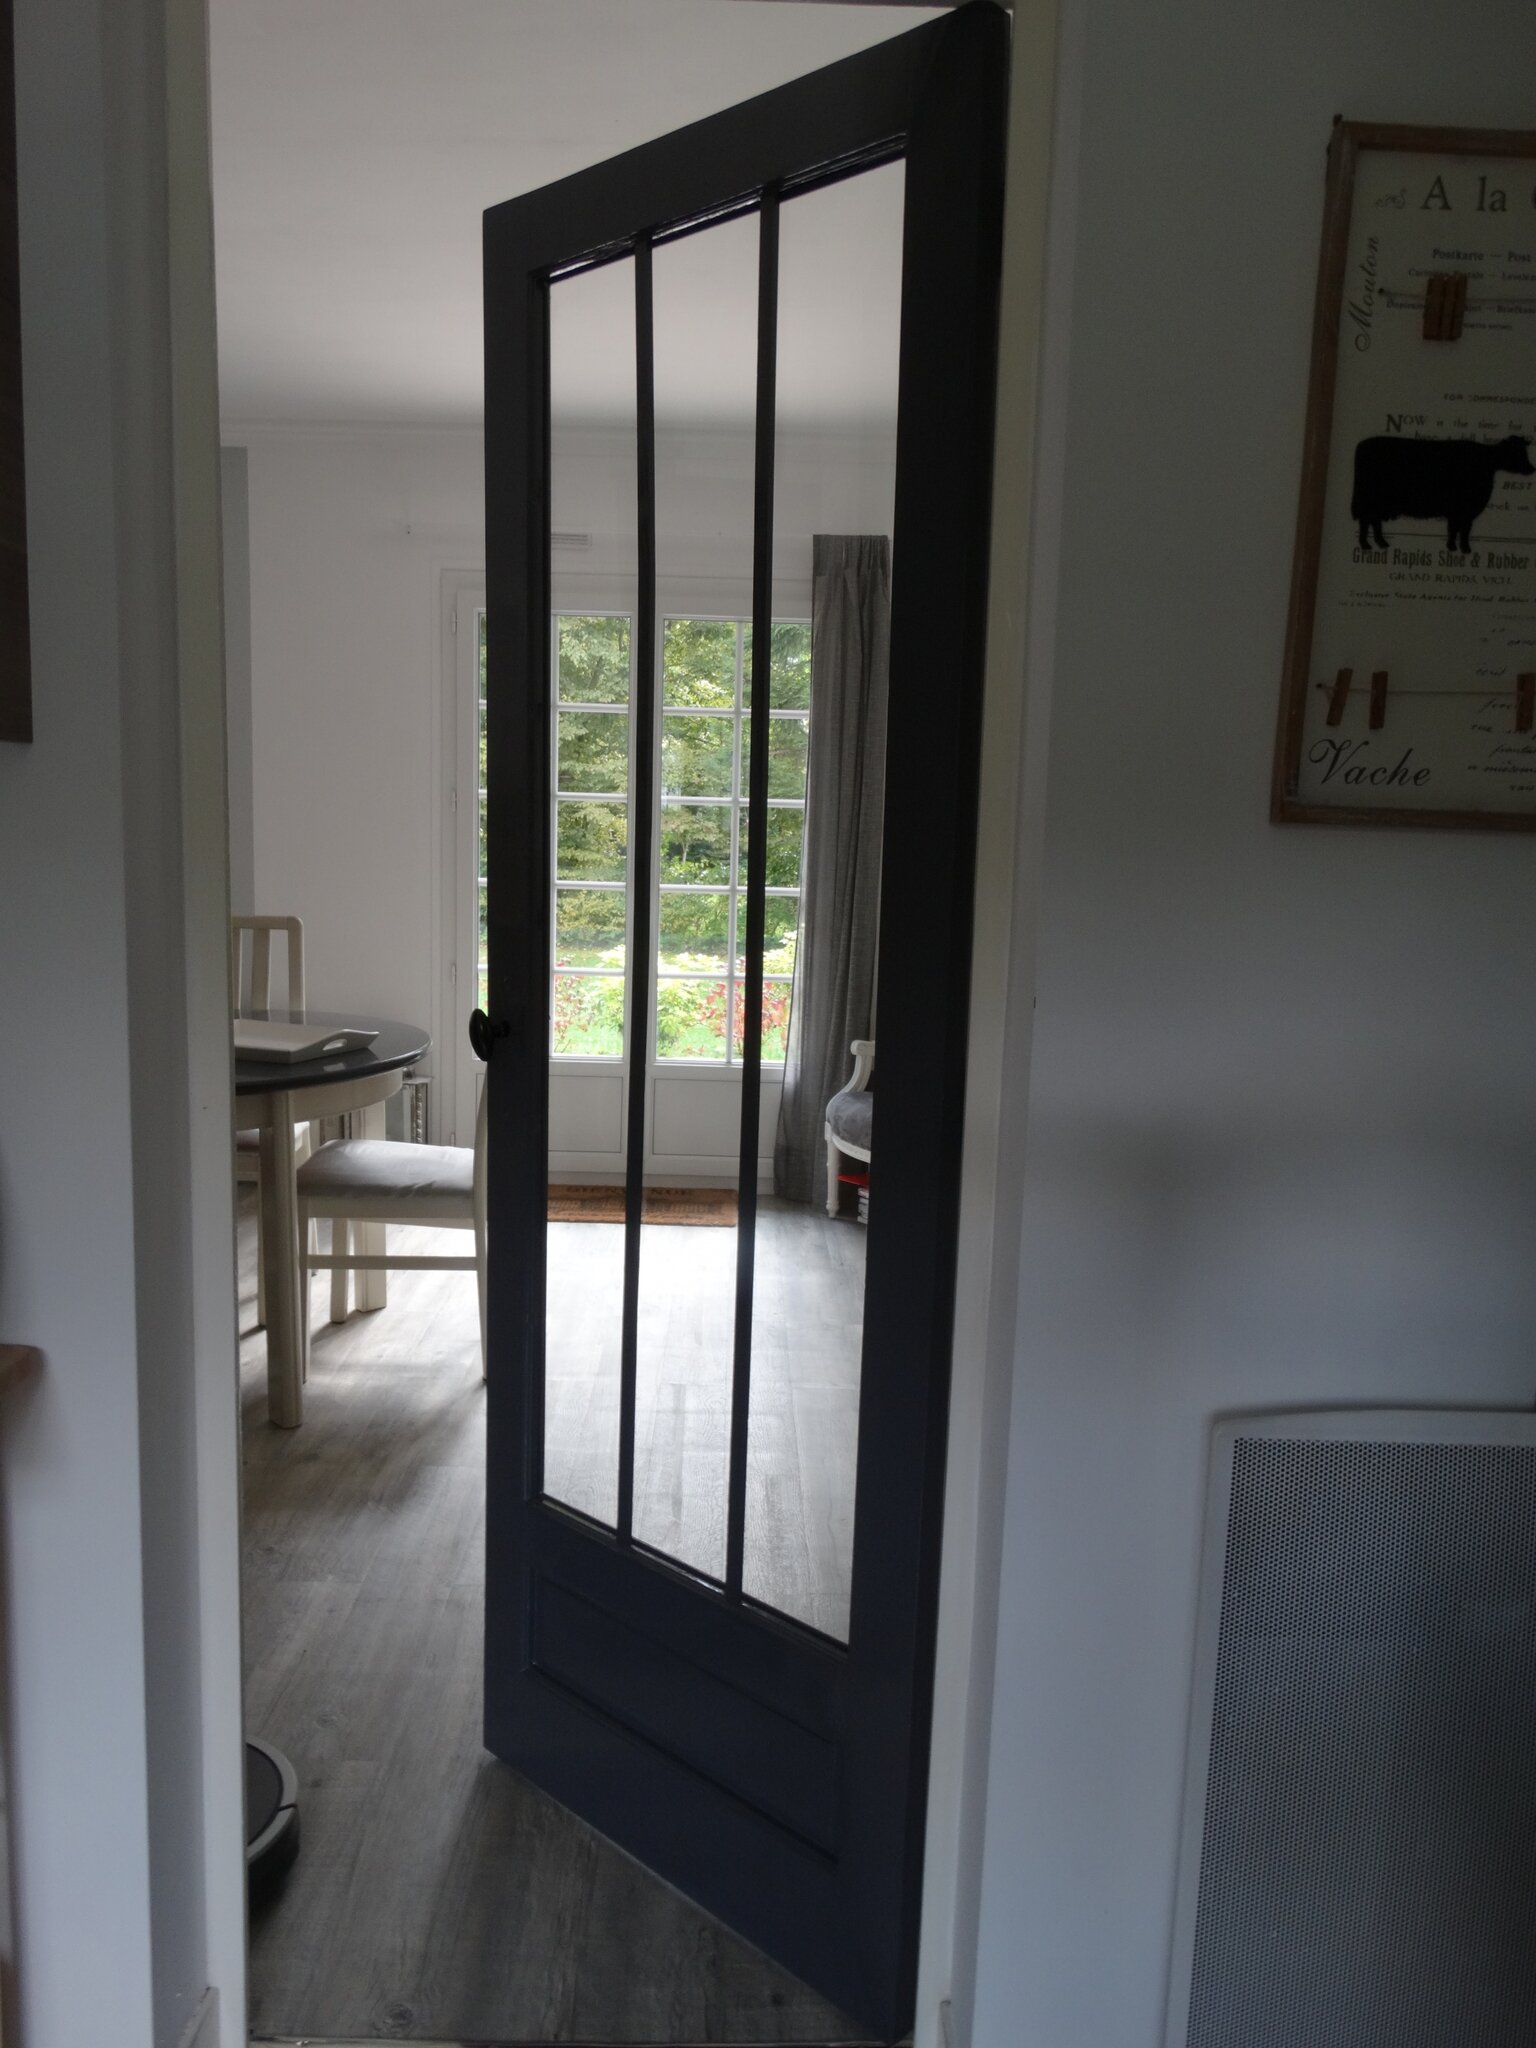 Porte int rieure fa on atelier nathou kikou mais pas for Porte a carreaux interieur